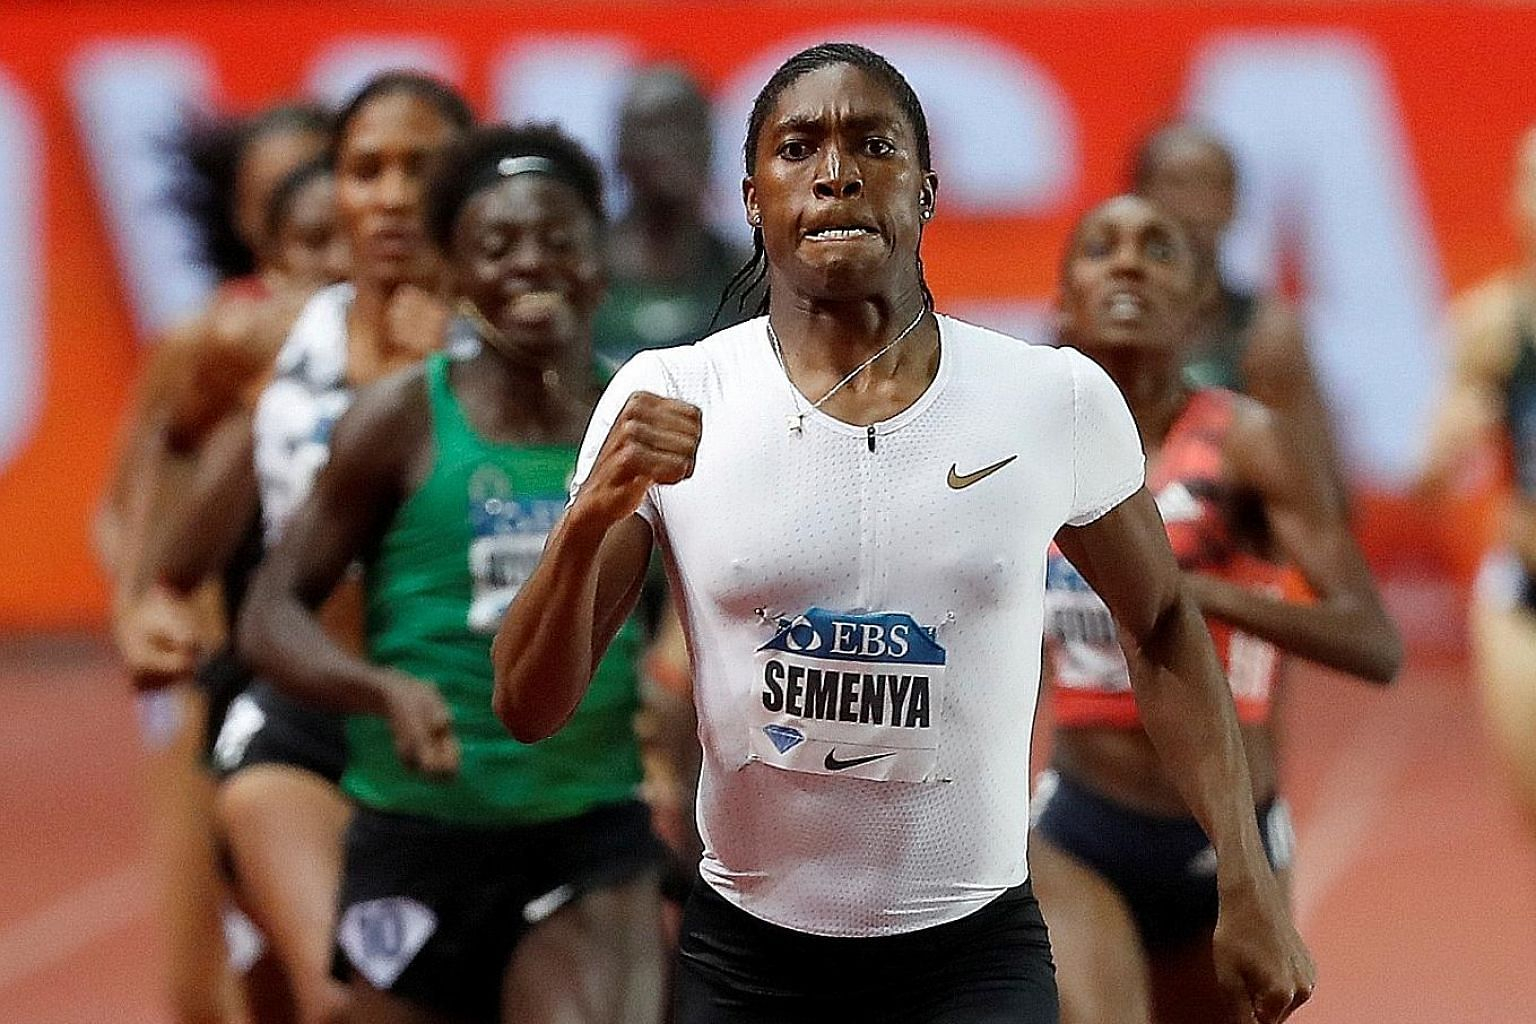 South Africa's Caster Semenya romping to victory in the 800m event in Monaco last year. The IAAF regulations require middle-distance female athletes with high natural levels of testosterone, like Semenya, to take hormone suppressants. PHOTO: REUTERS